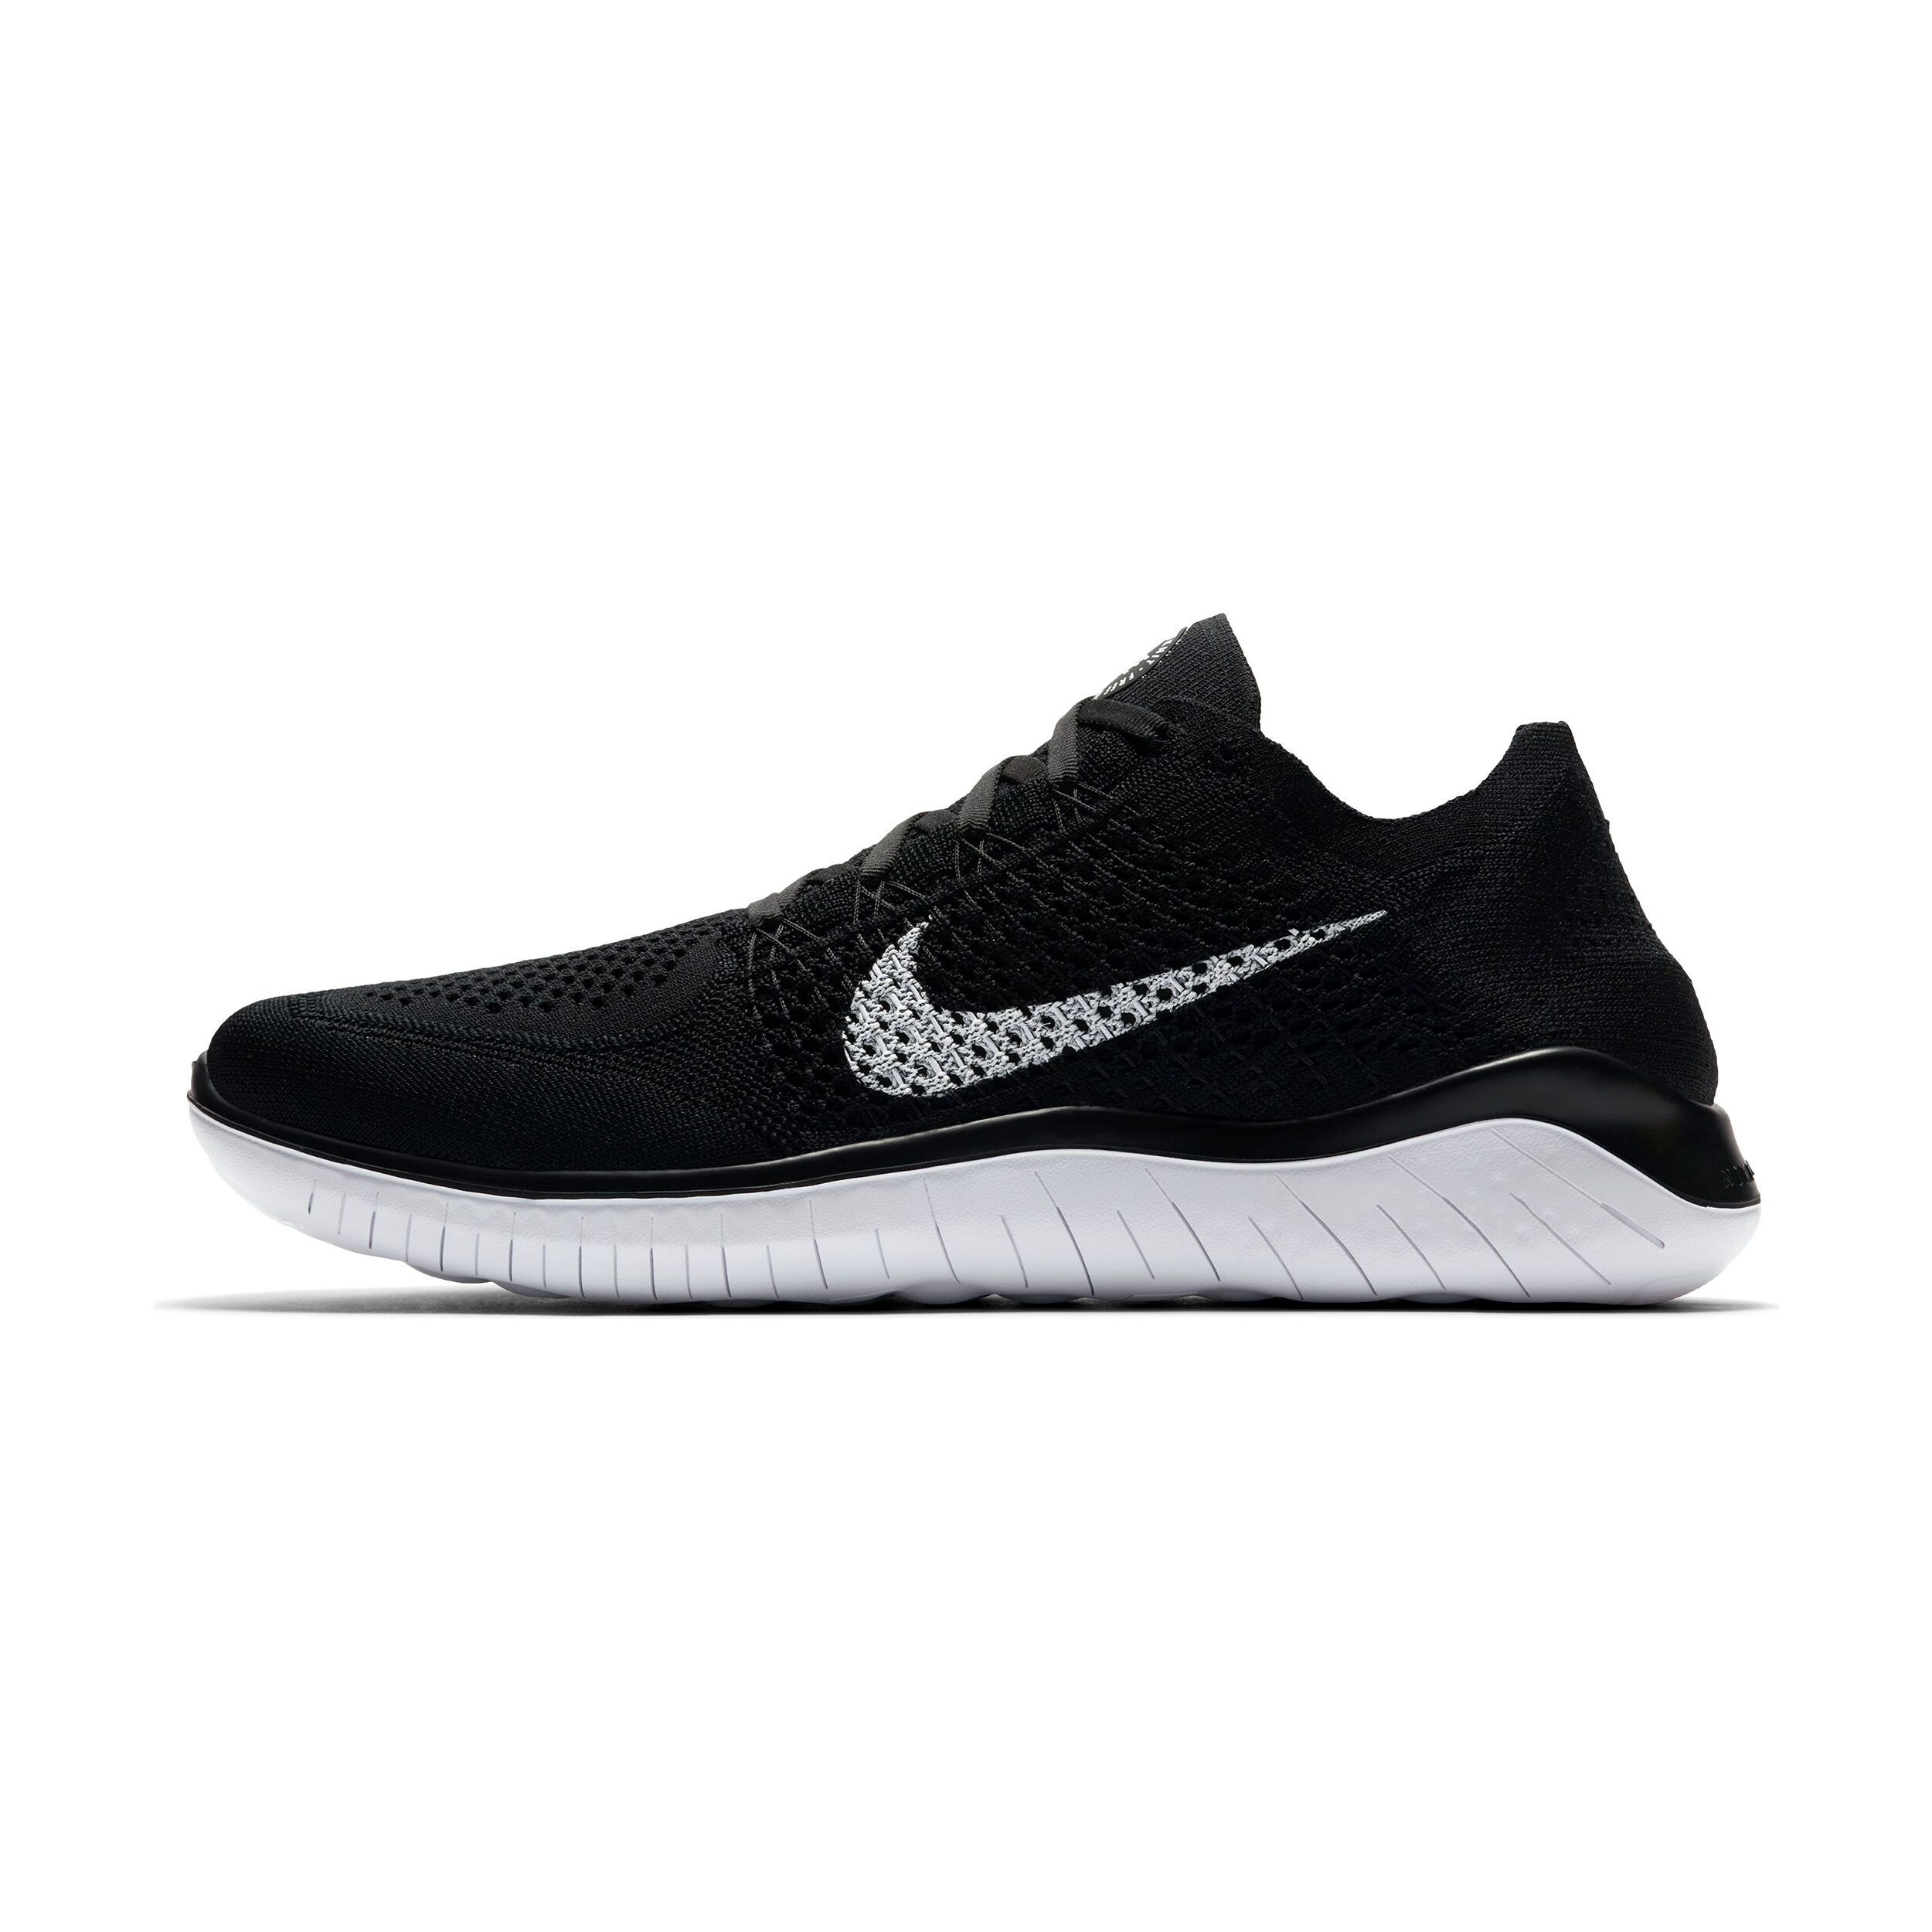 Nike Free 5.0 in 86438 Kissing for €35.00 for sale   Shpock